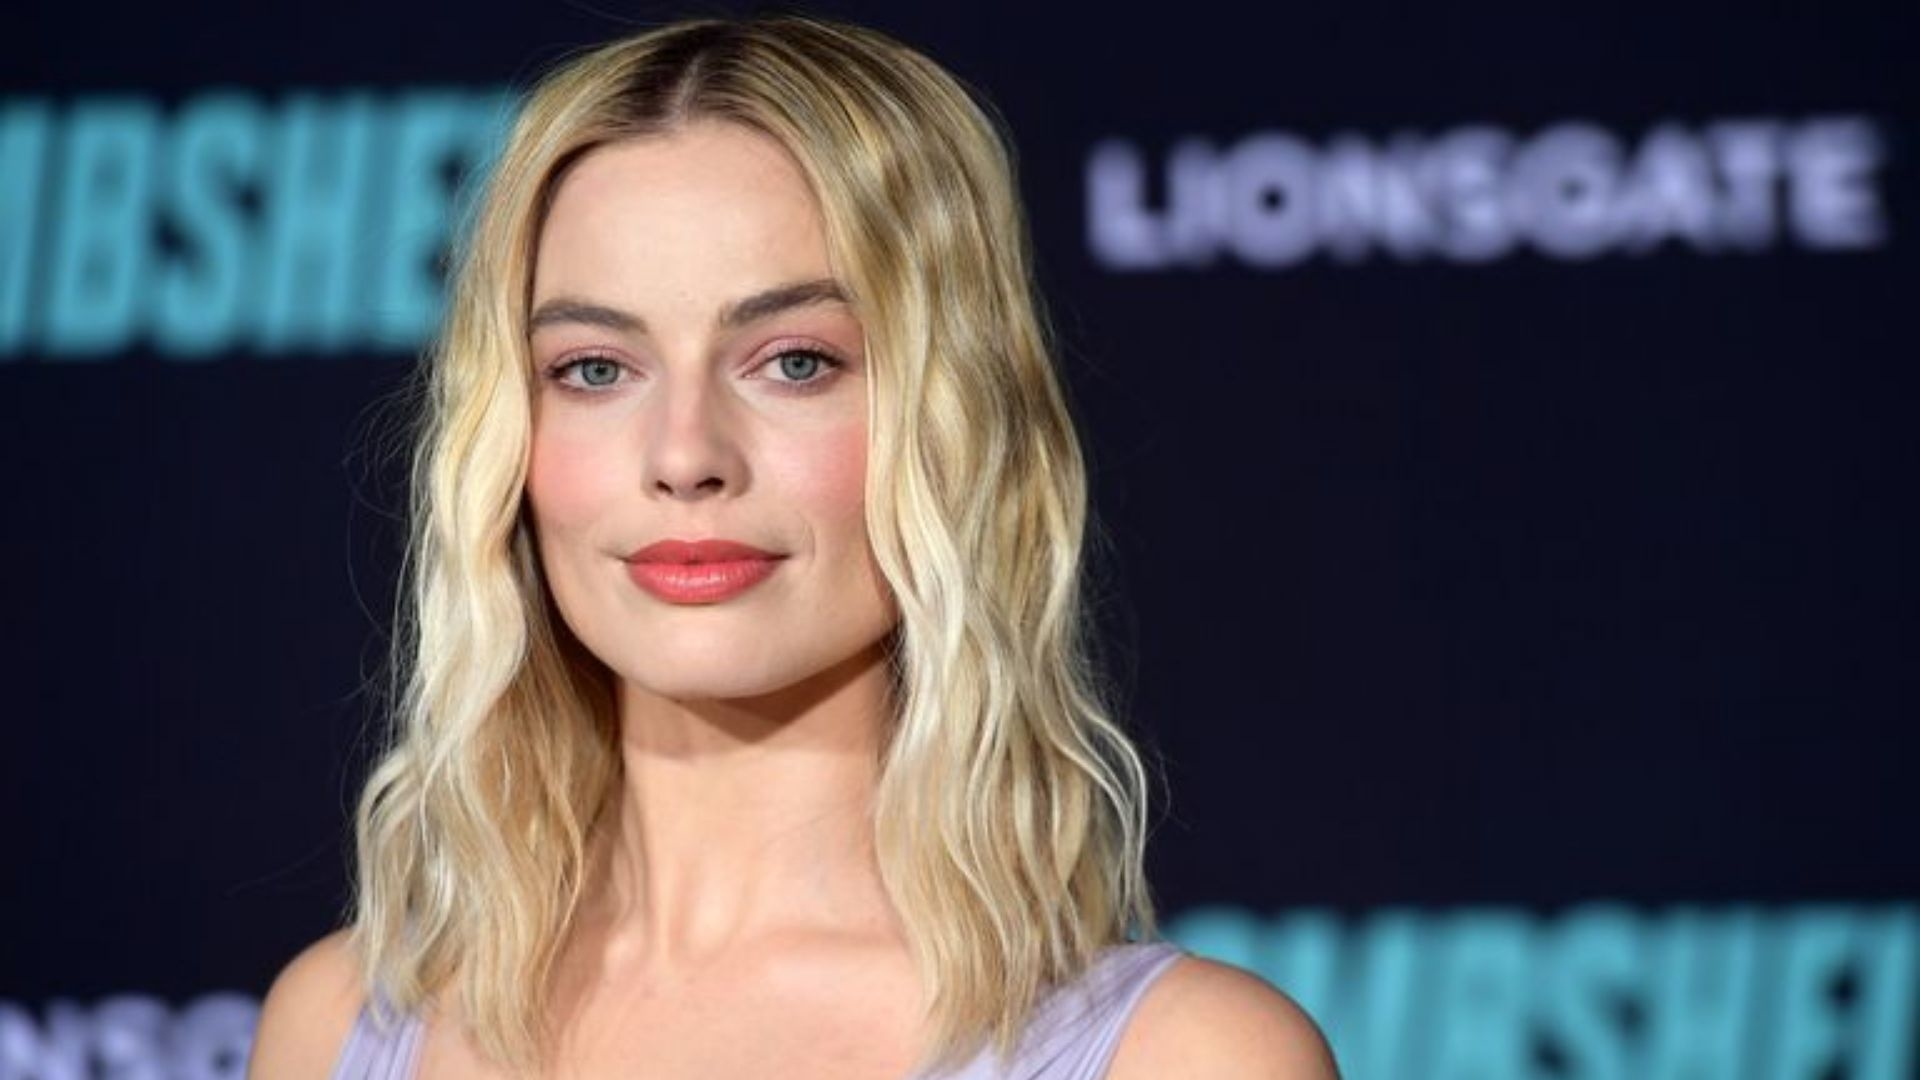 Margot Robbie Brought Back The Bubble Hem On The Red Carpet Last Night